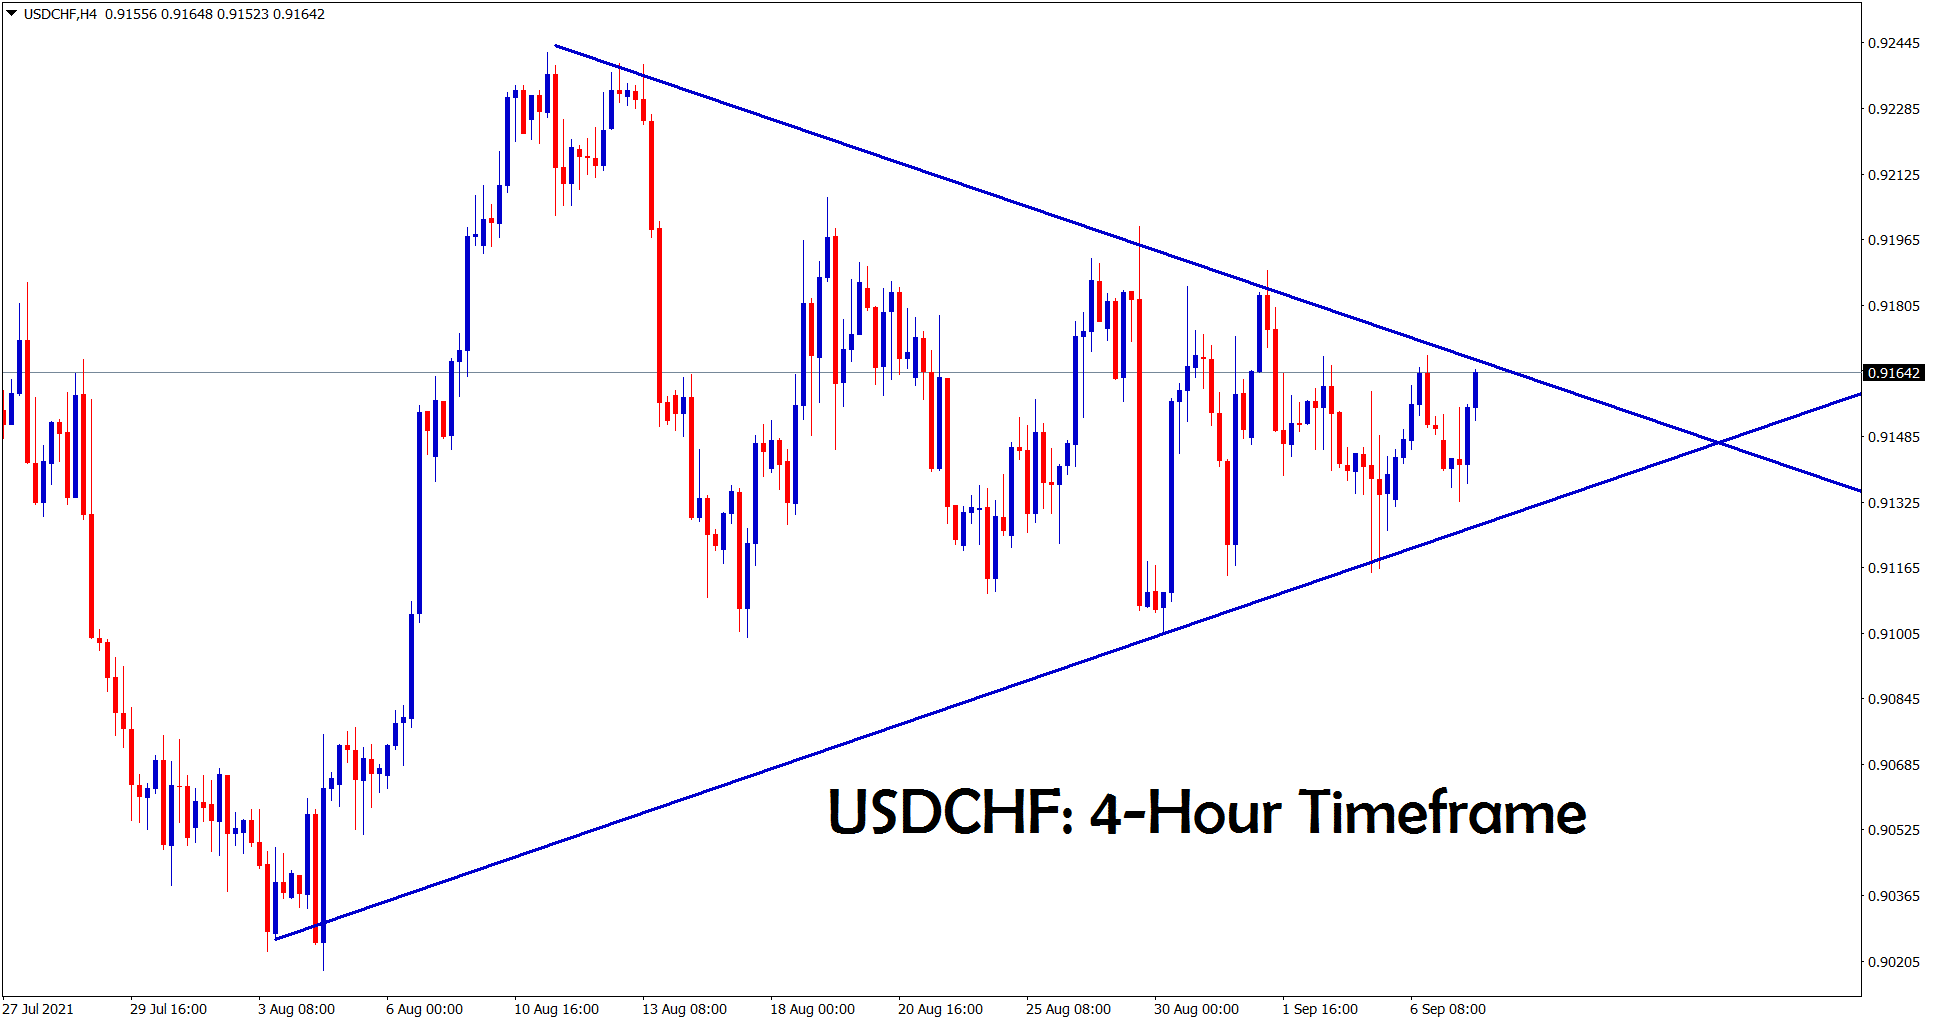 USDCHF is going to break the symmetrical triangle pattern soon